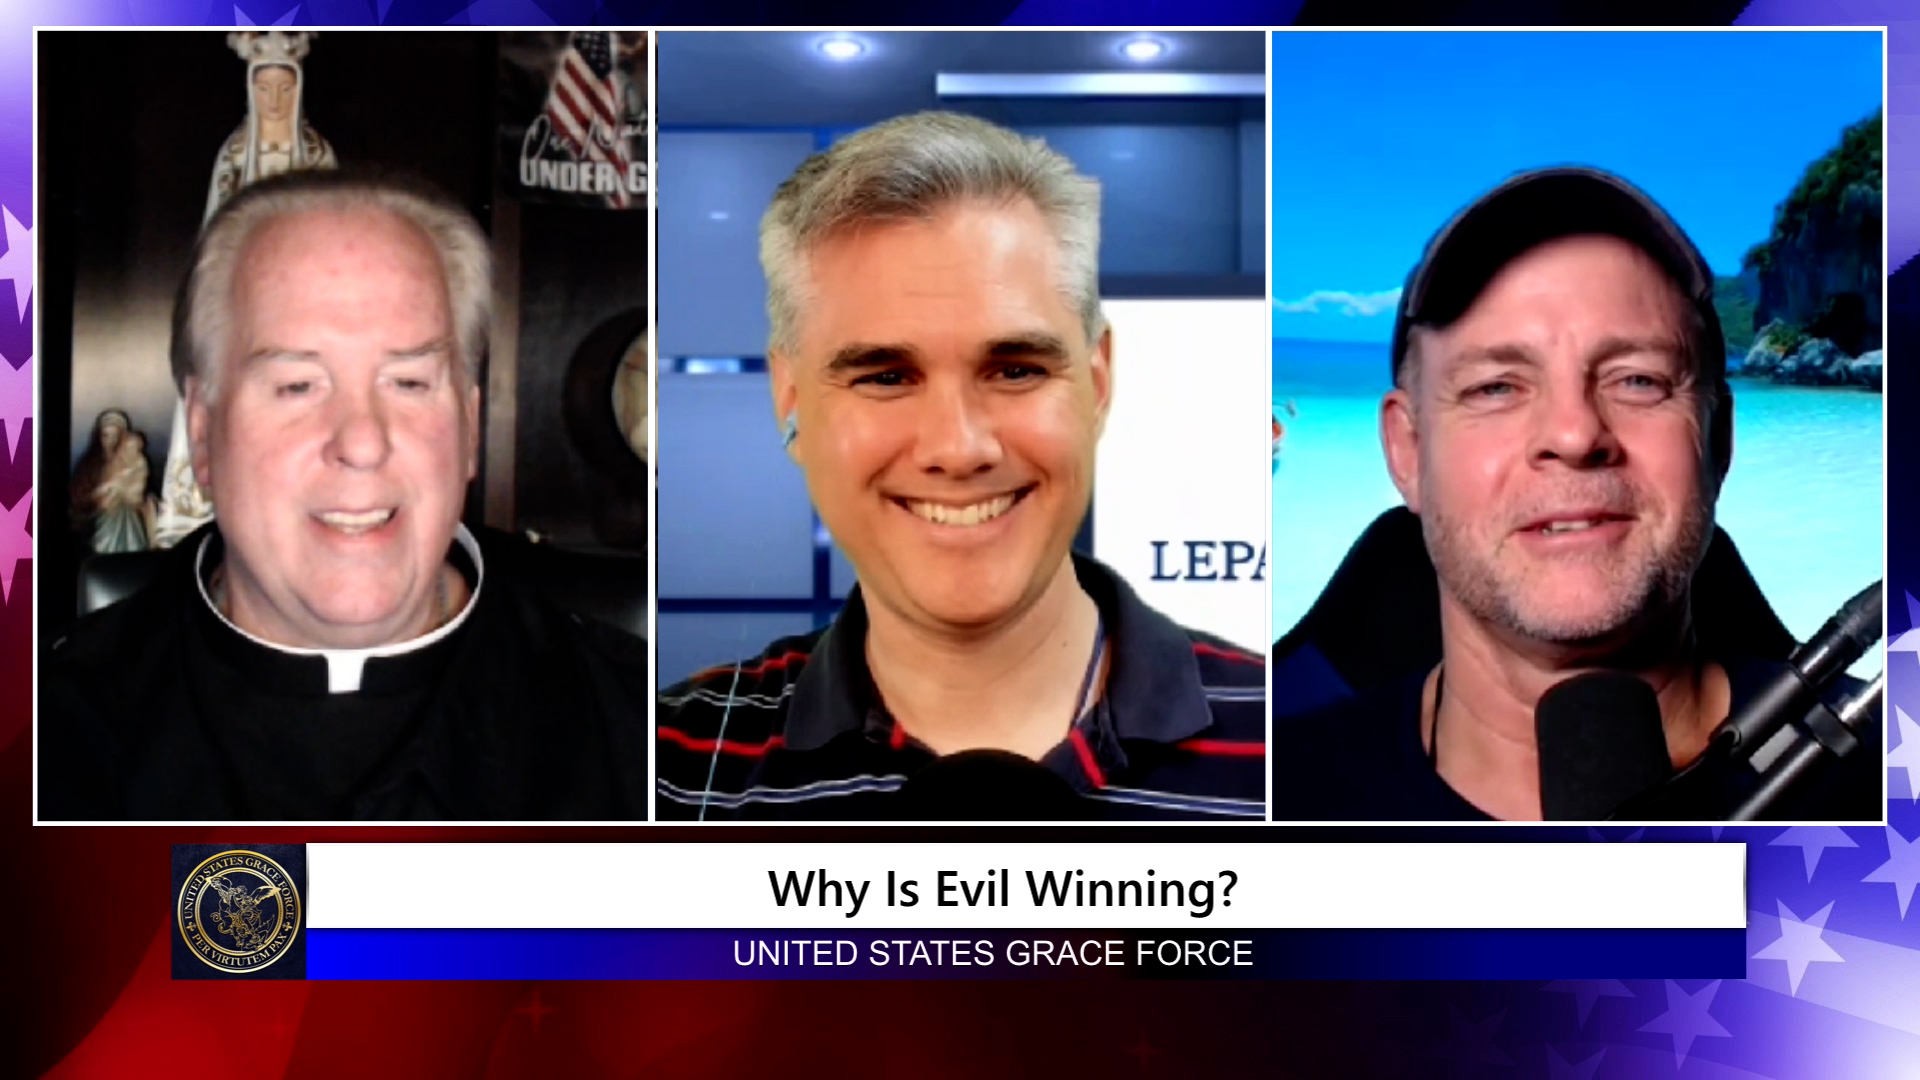 Why Is Evil Winning?